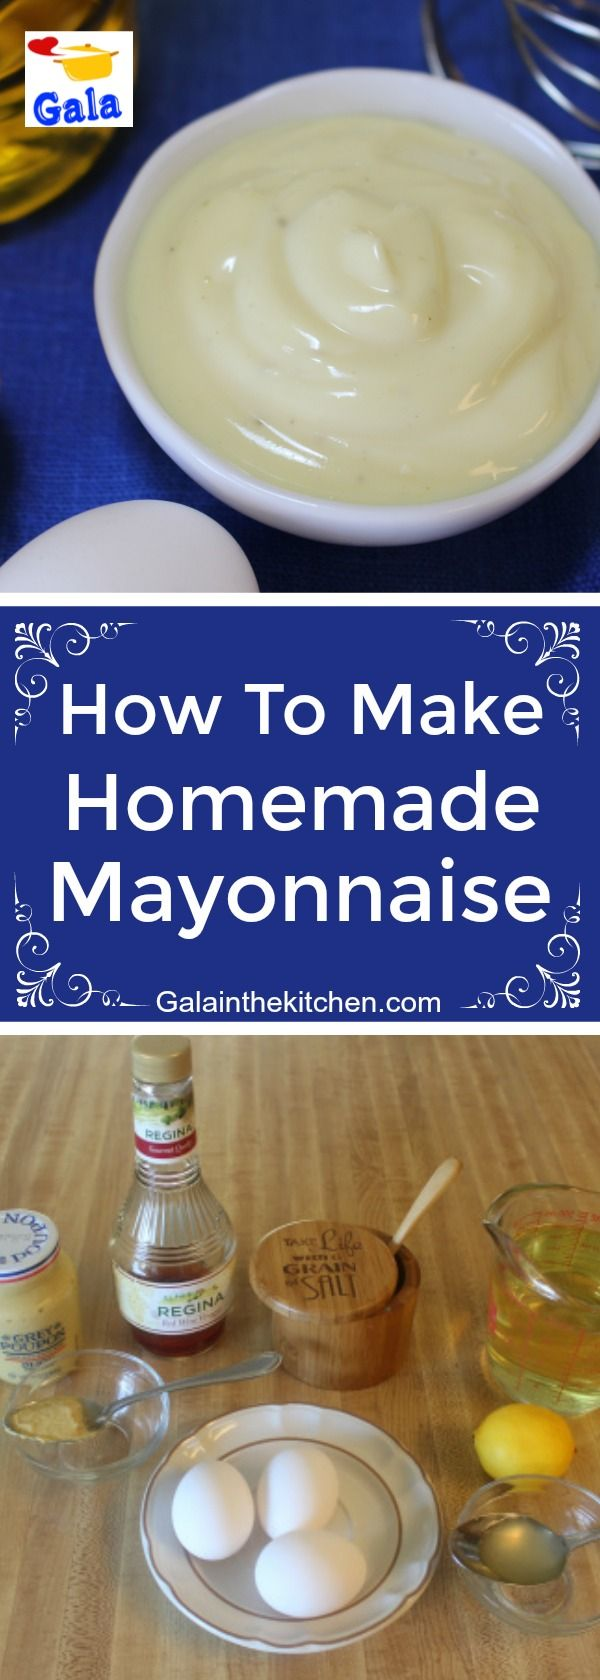 Technology Of The Preparation Of Homemade Mayonnaise And Recipe Gala In The Kitchen Homemade Mayonnaise How To Make Mayonnaise Homemade Mayonaise